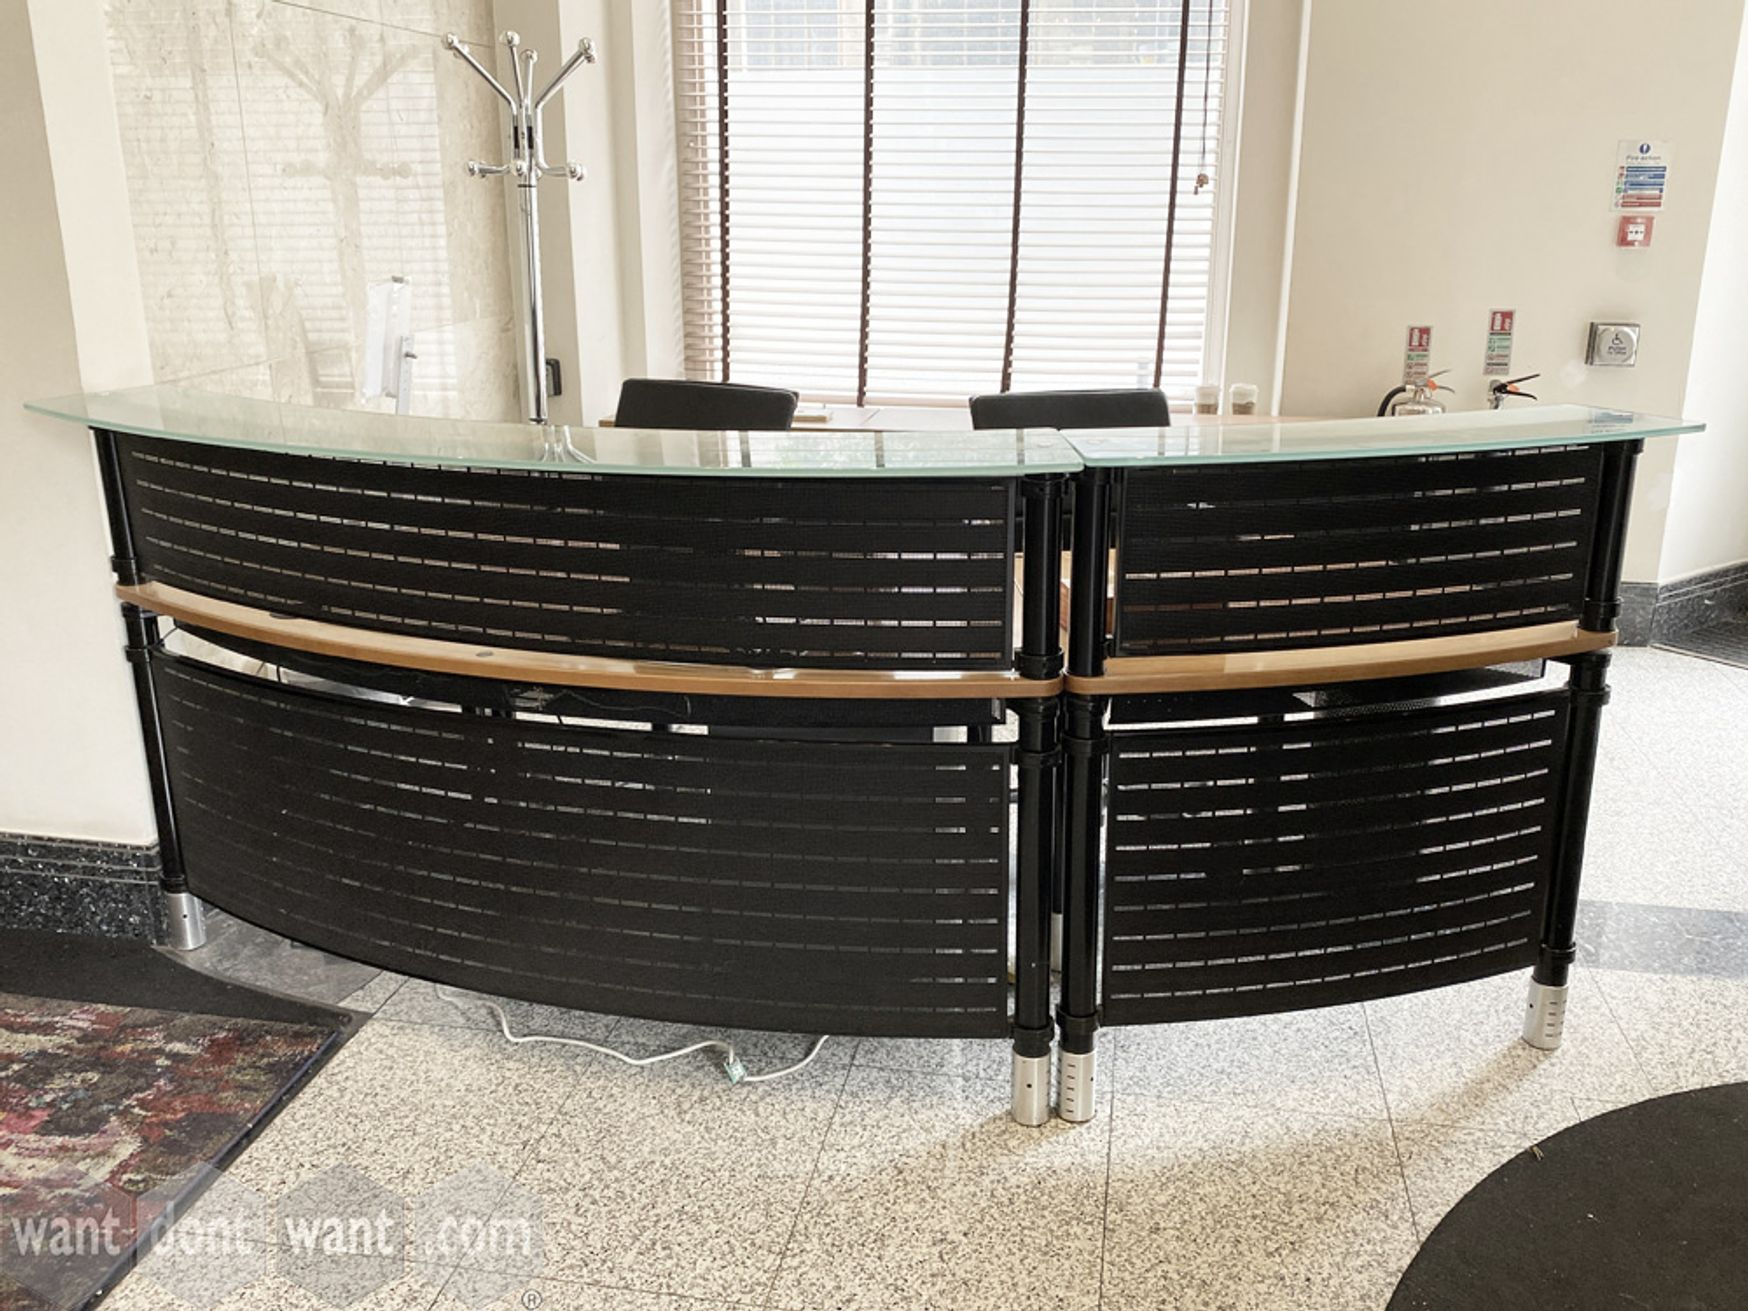 Used modern curved reception desk with black metal front panels - Approx. 2400mm wide.